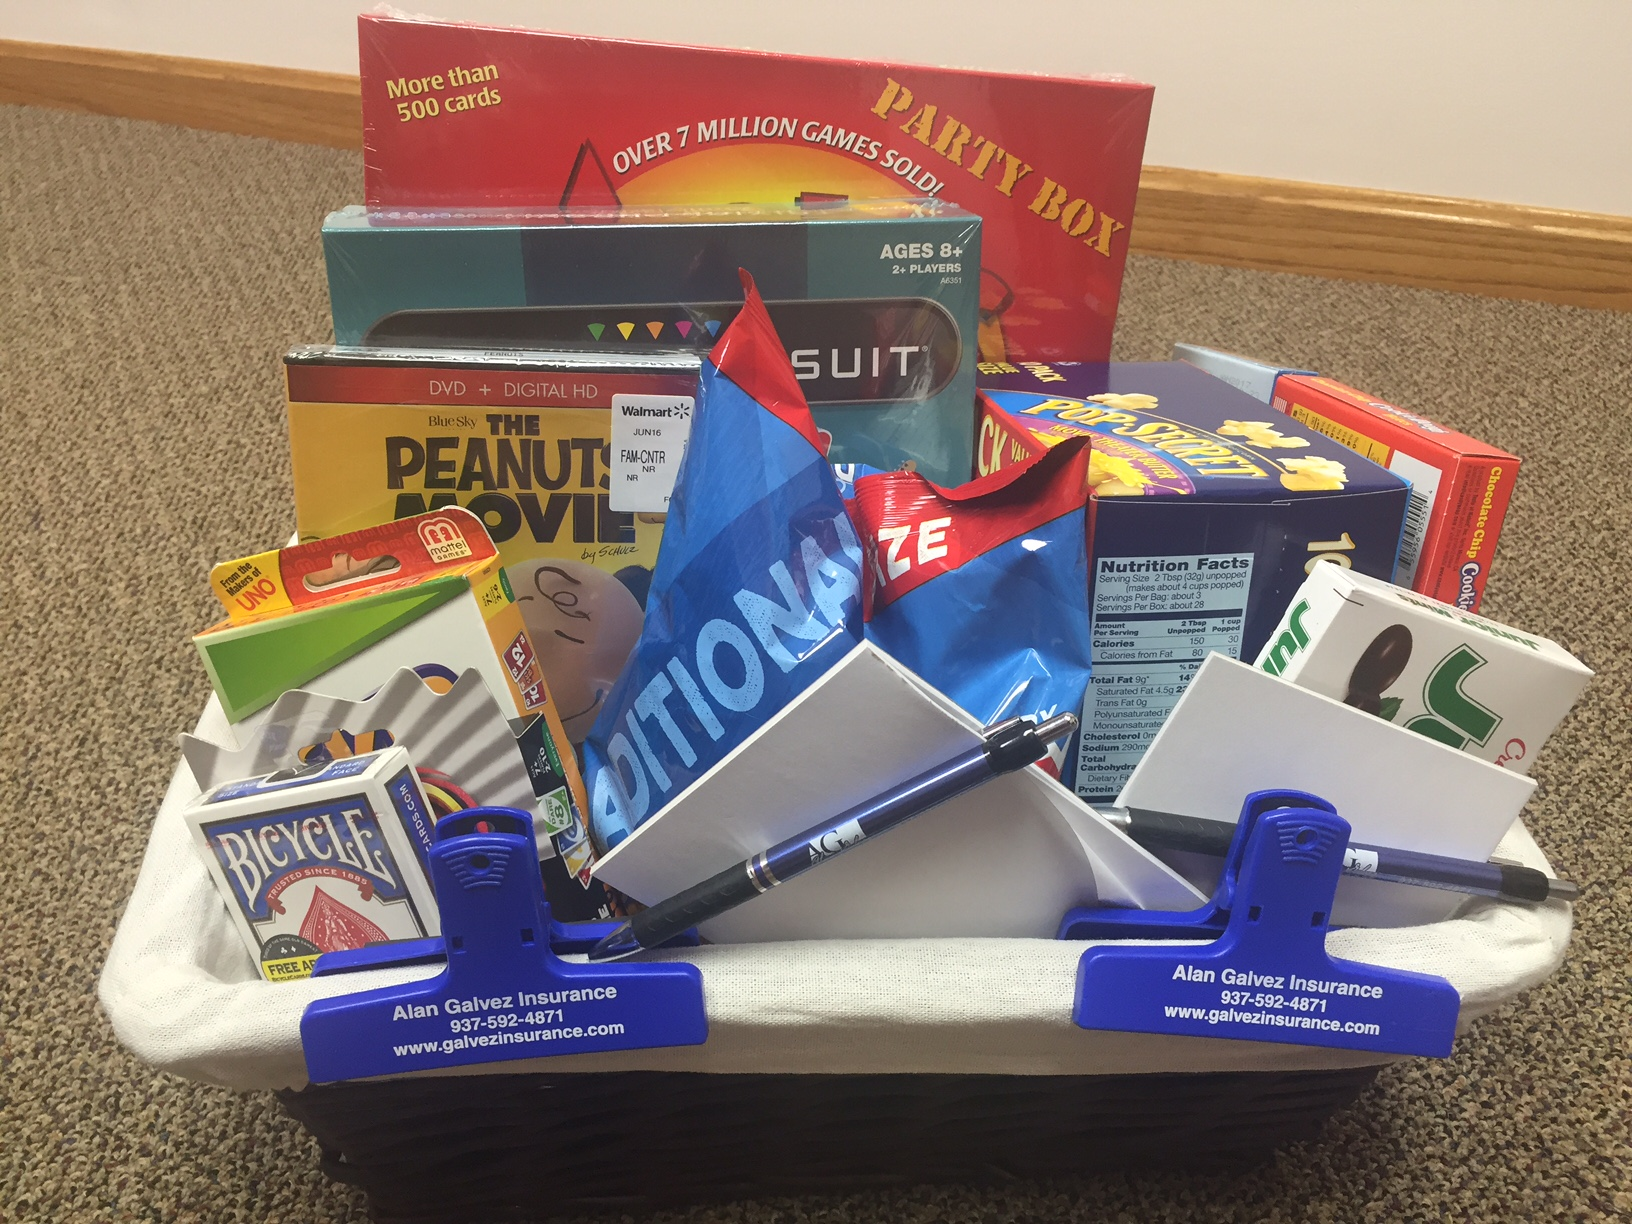 Bellefontaine Community Safety Event- Family Fun Night basket- Alan Galvez Insurance